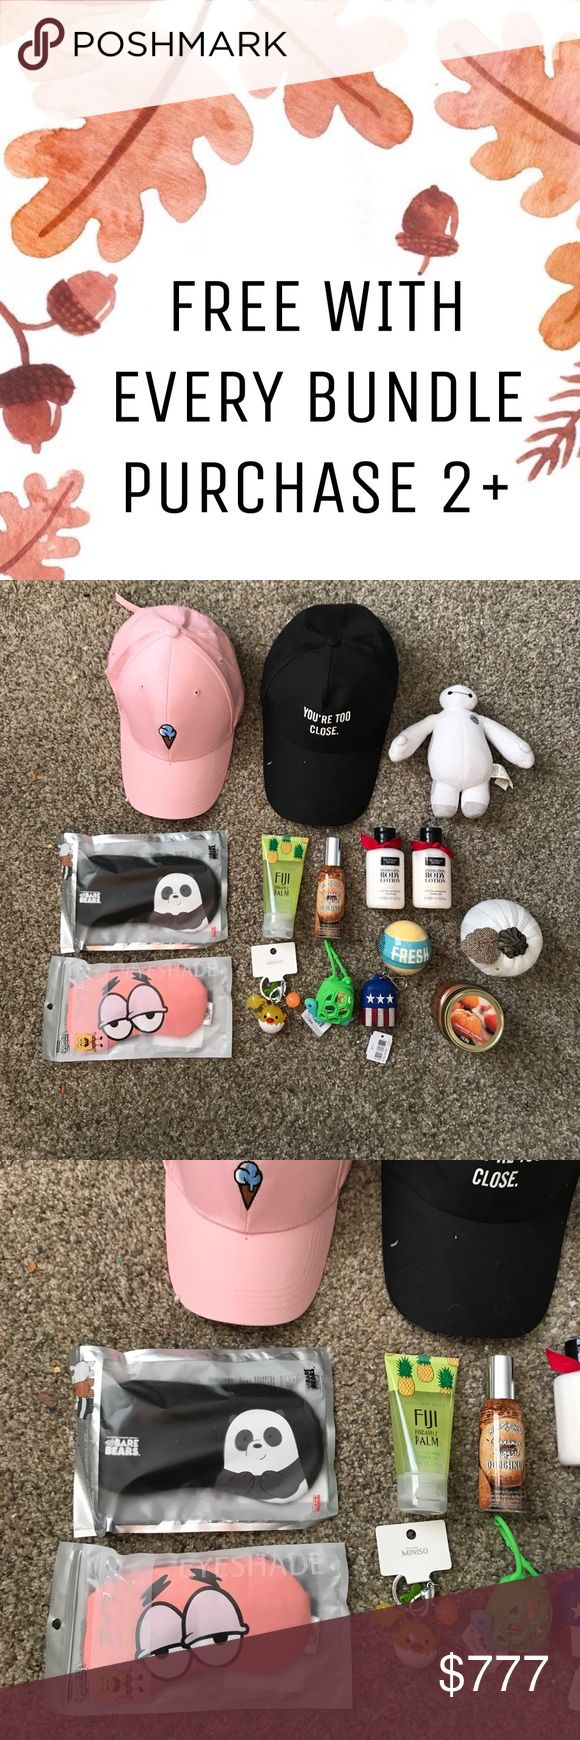 Free with every bundle purchase 2+ Free with a bundle purchase of two items or more:  Ice cream baseball cap You're too close cap Baymax plush We bear bears eye mask Patrick mask Victoria Secret lotion Fresh PINK bath bomb Donut room spray  Pineapple shower gel Chicken keychain  Turtle pocketbac USA pocketbac Pumpkin candle  White pumpkin decor  🌈🌈🌈 ONLY ONE ITEM PINK Victoria's Secret Other